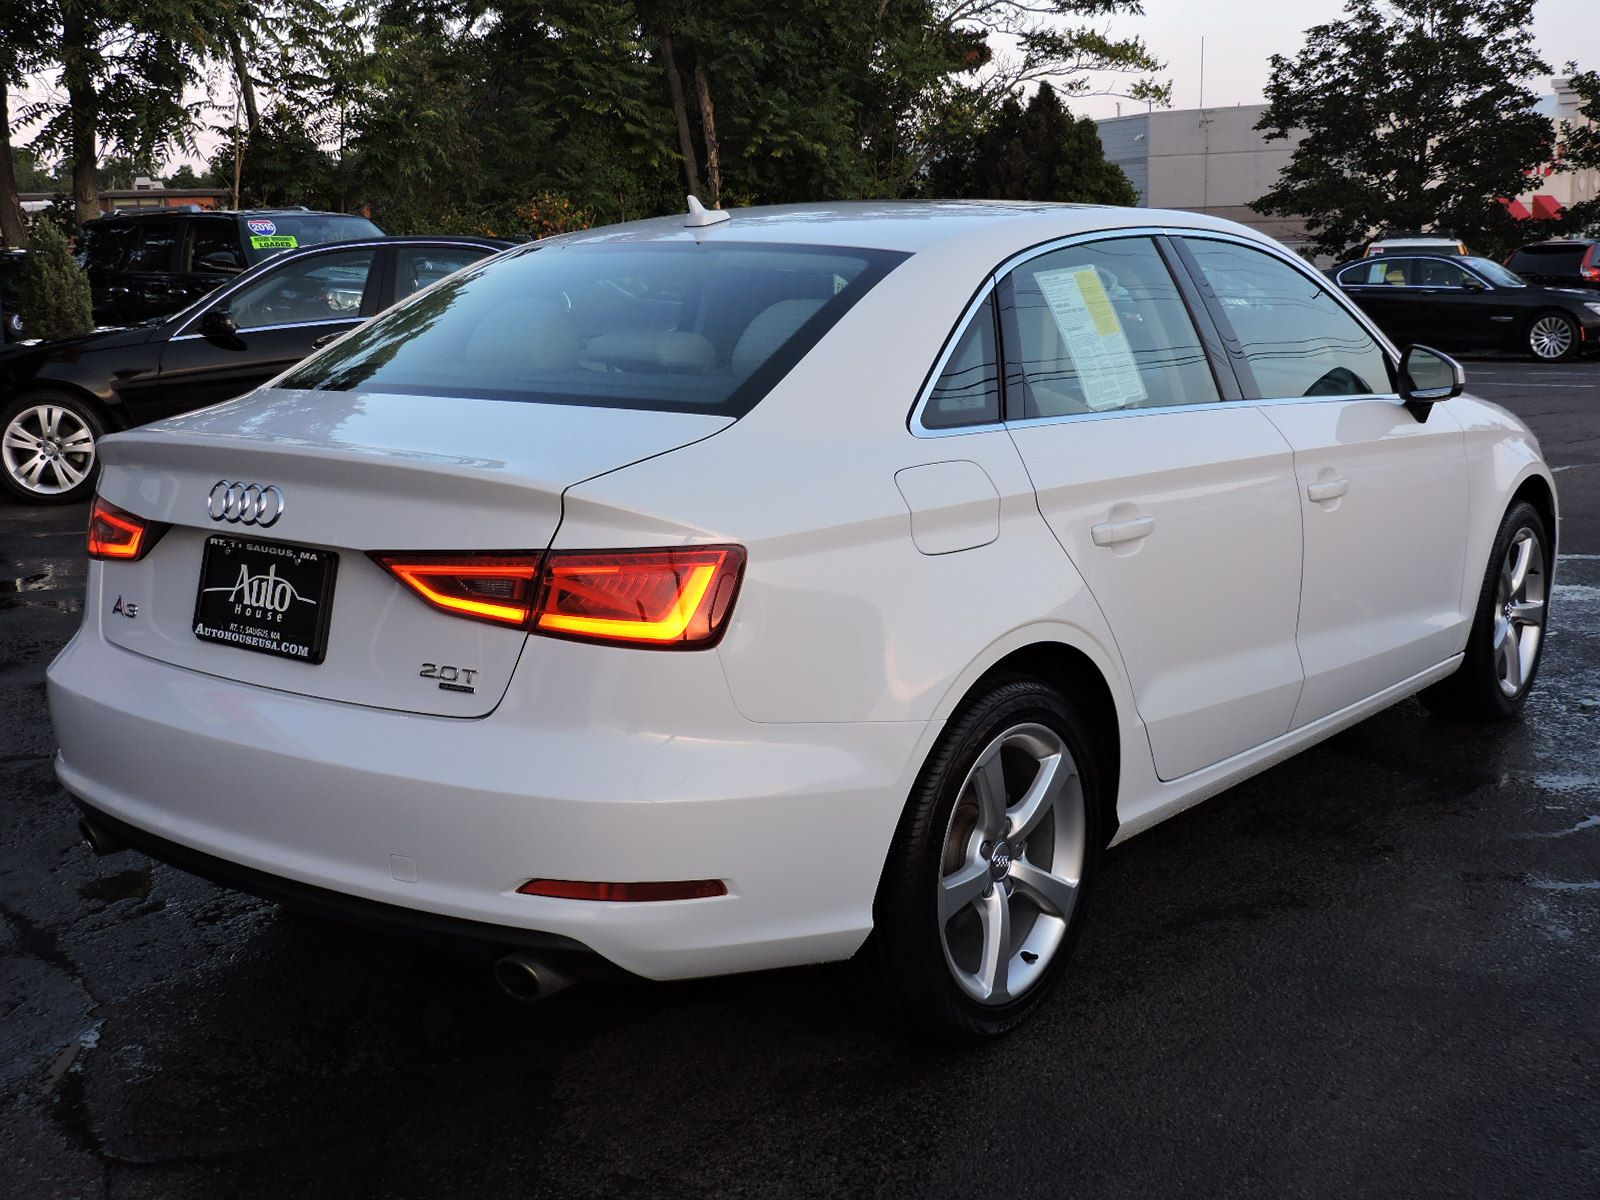 2015 Audi A3 2.0 - Quattro - All Wheel Drive - Navigation